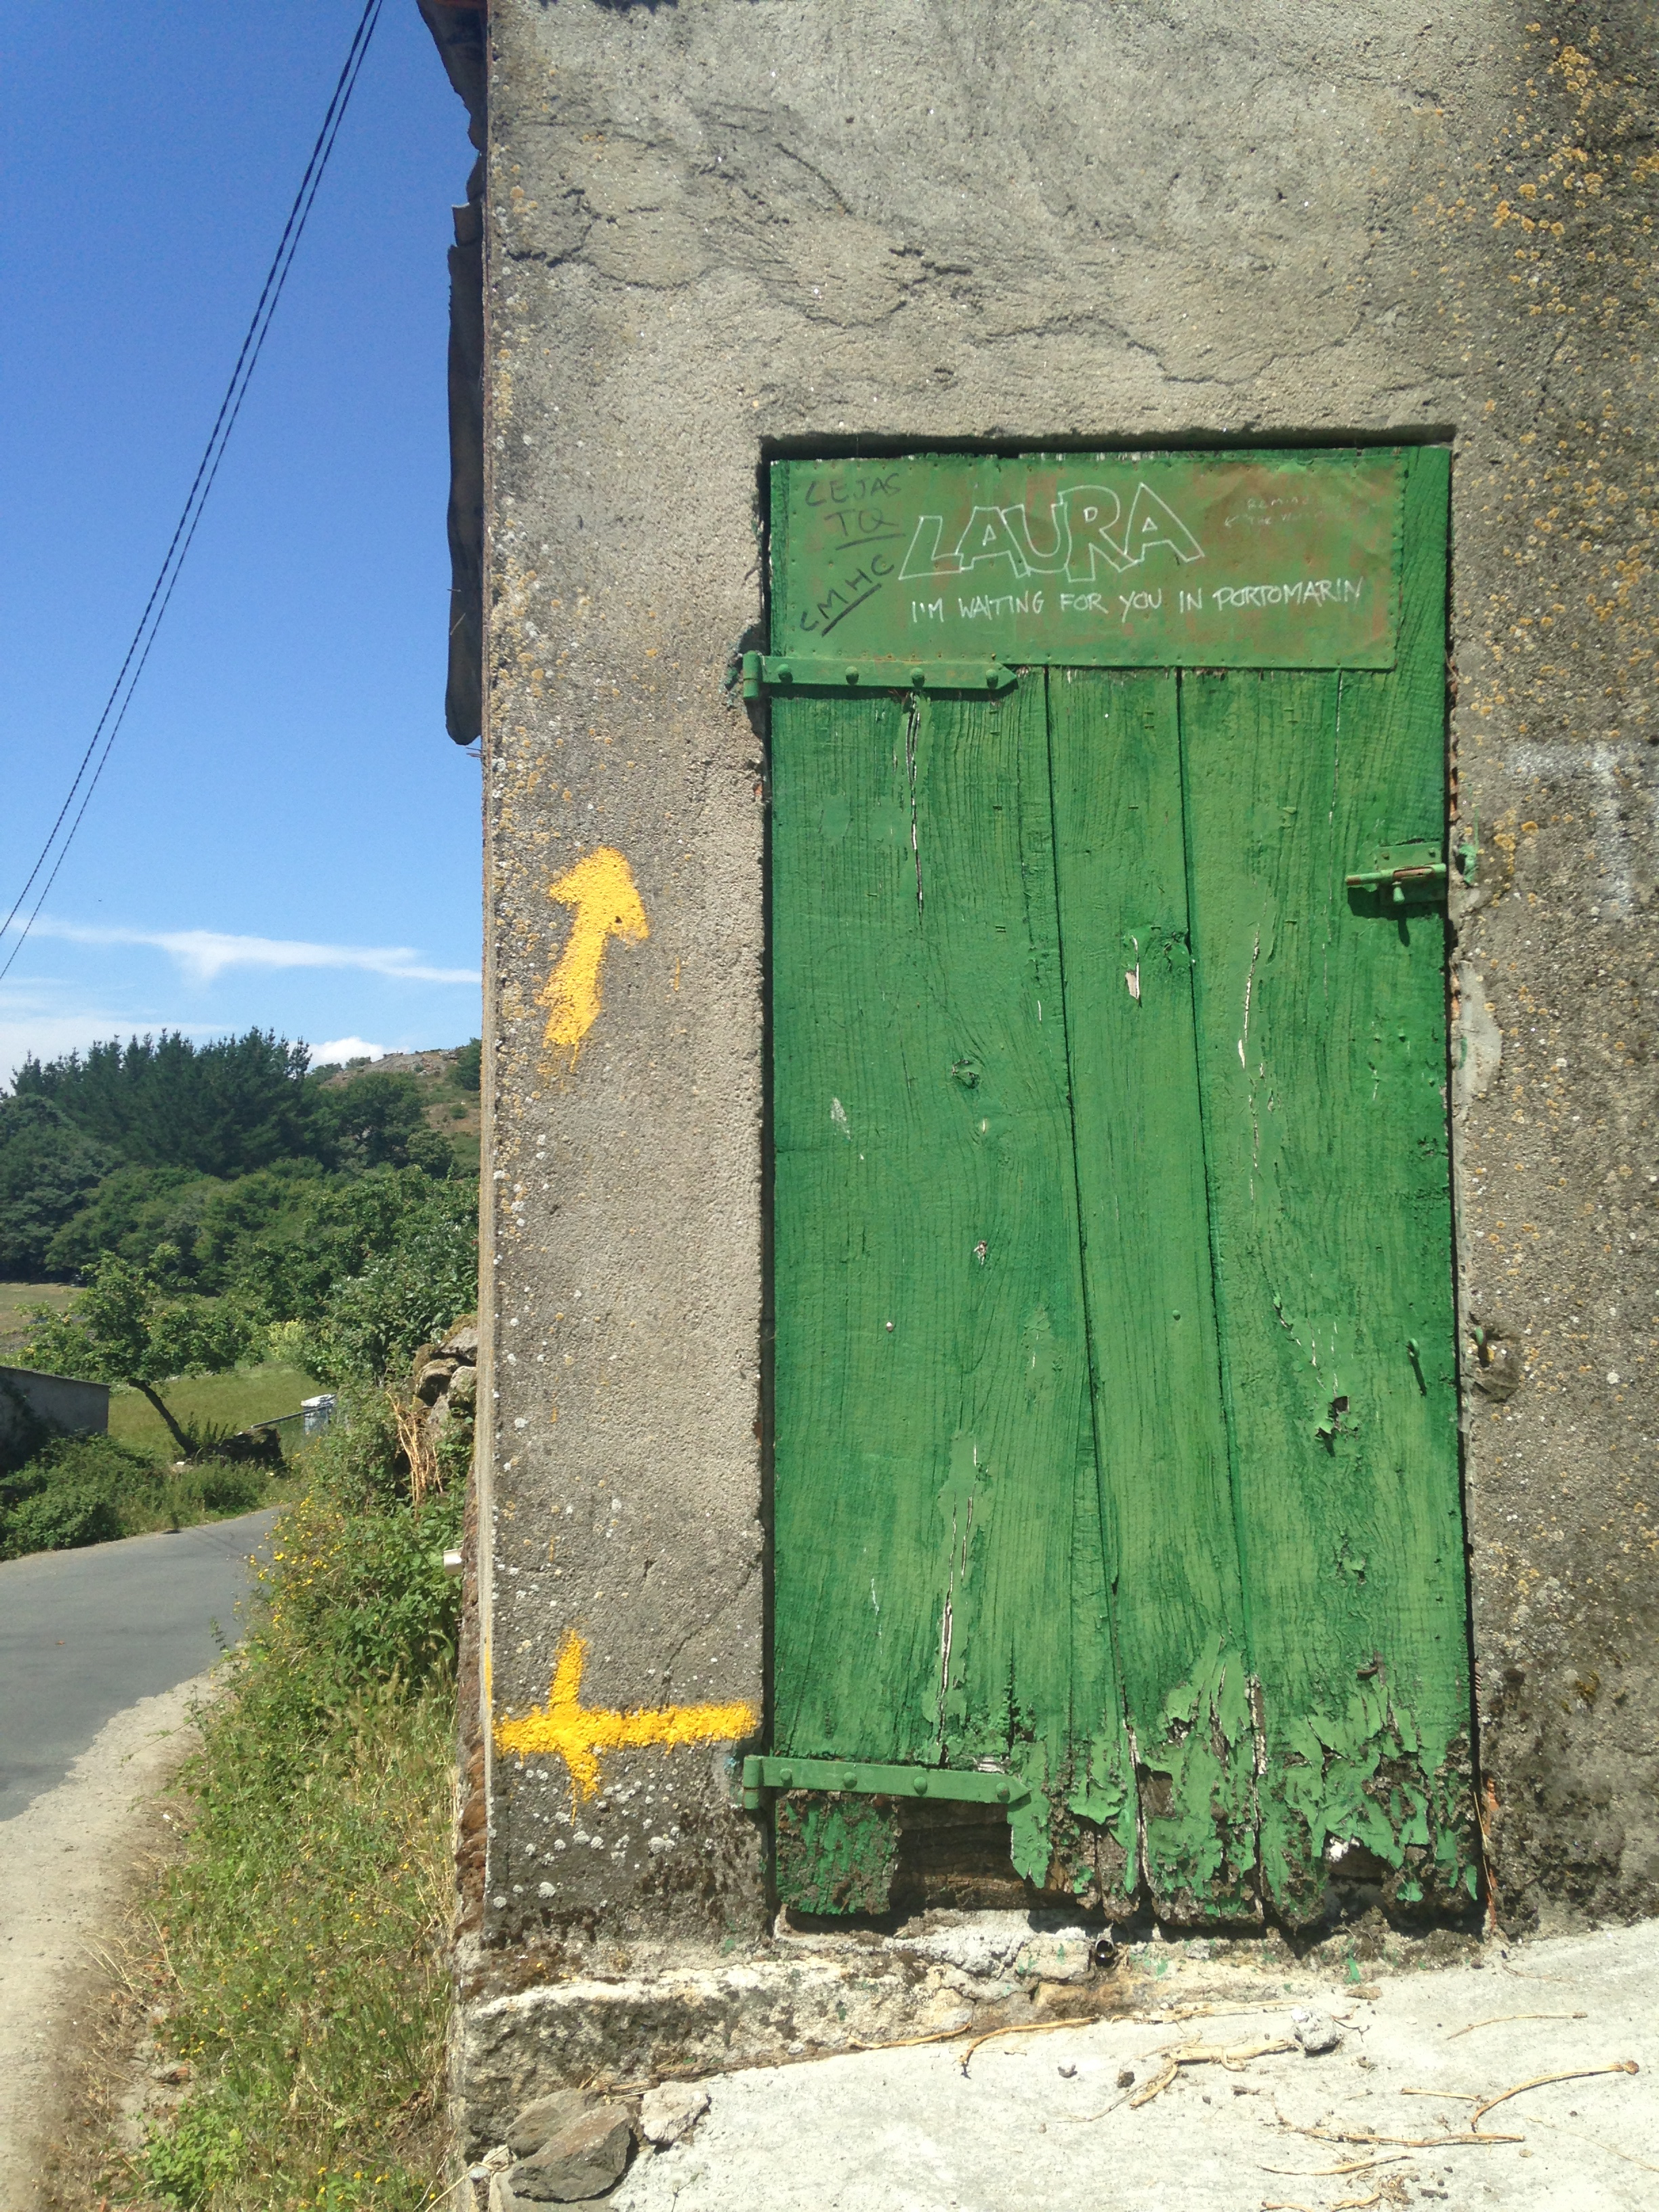 Green door, yellow arrows